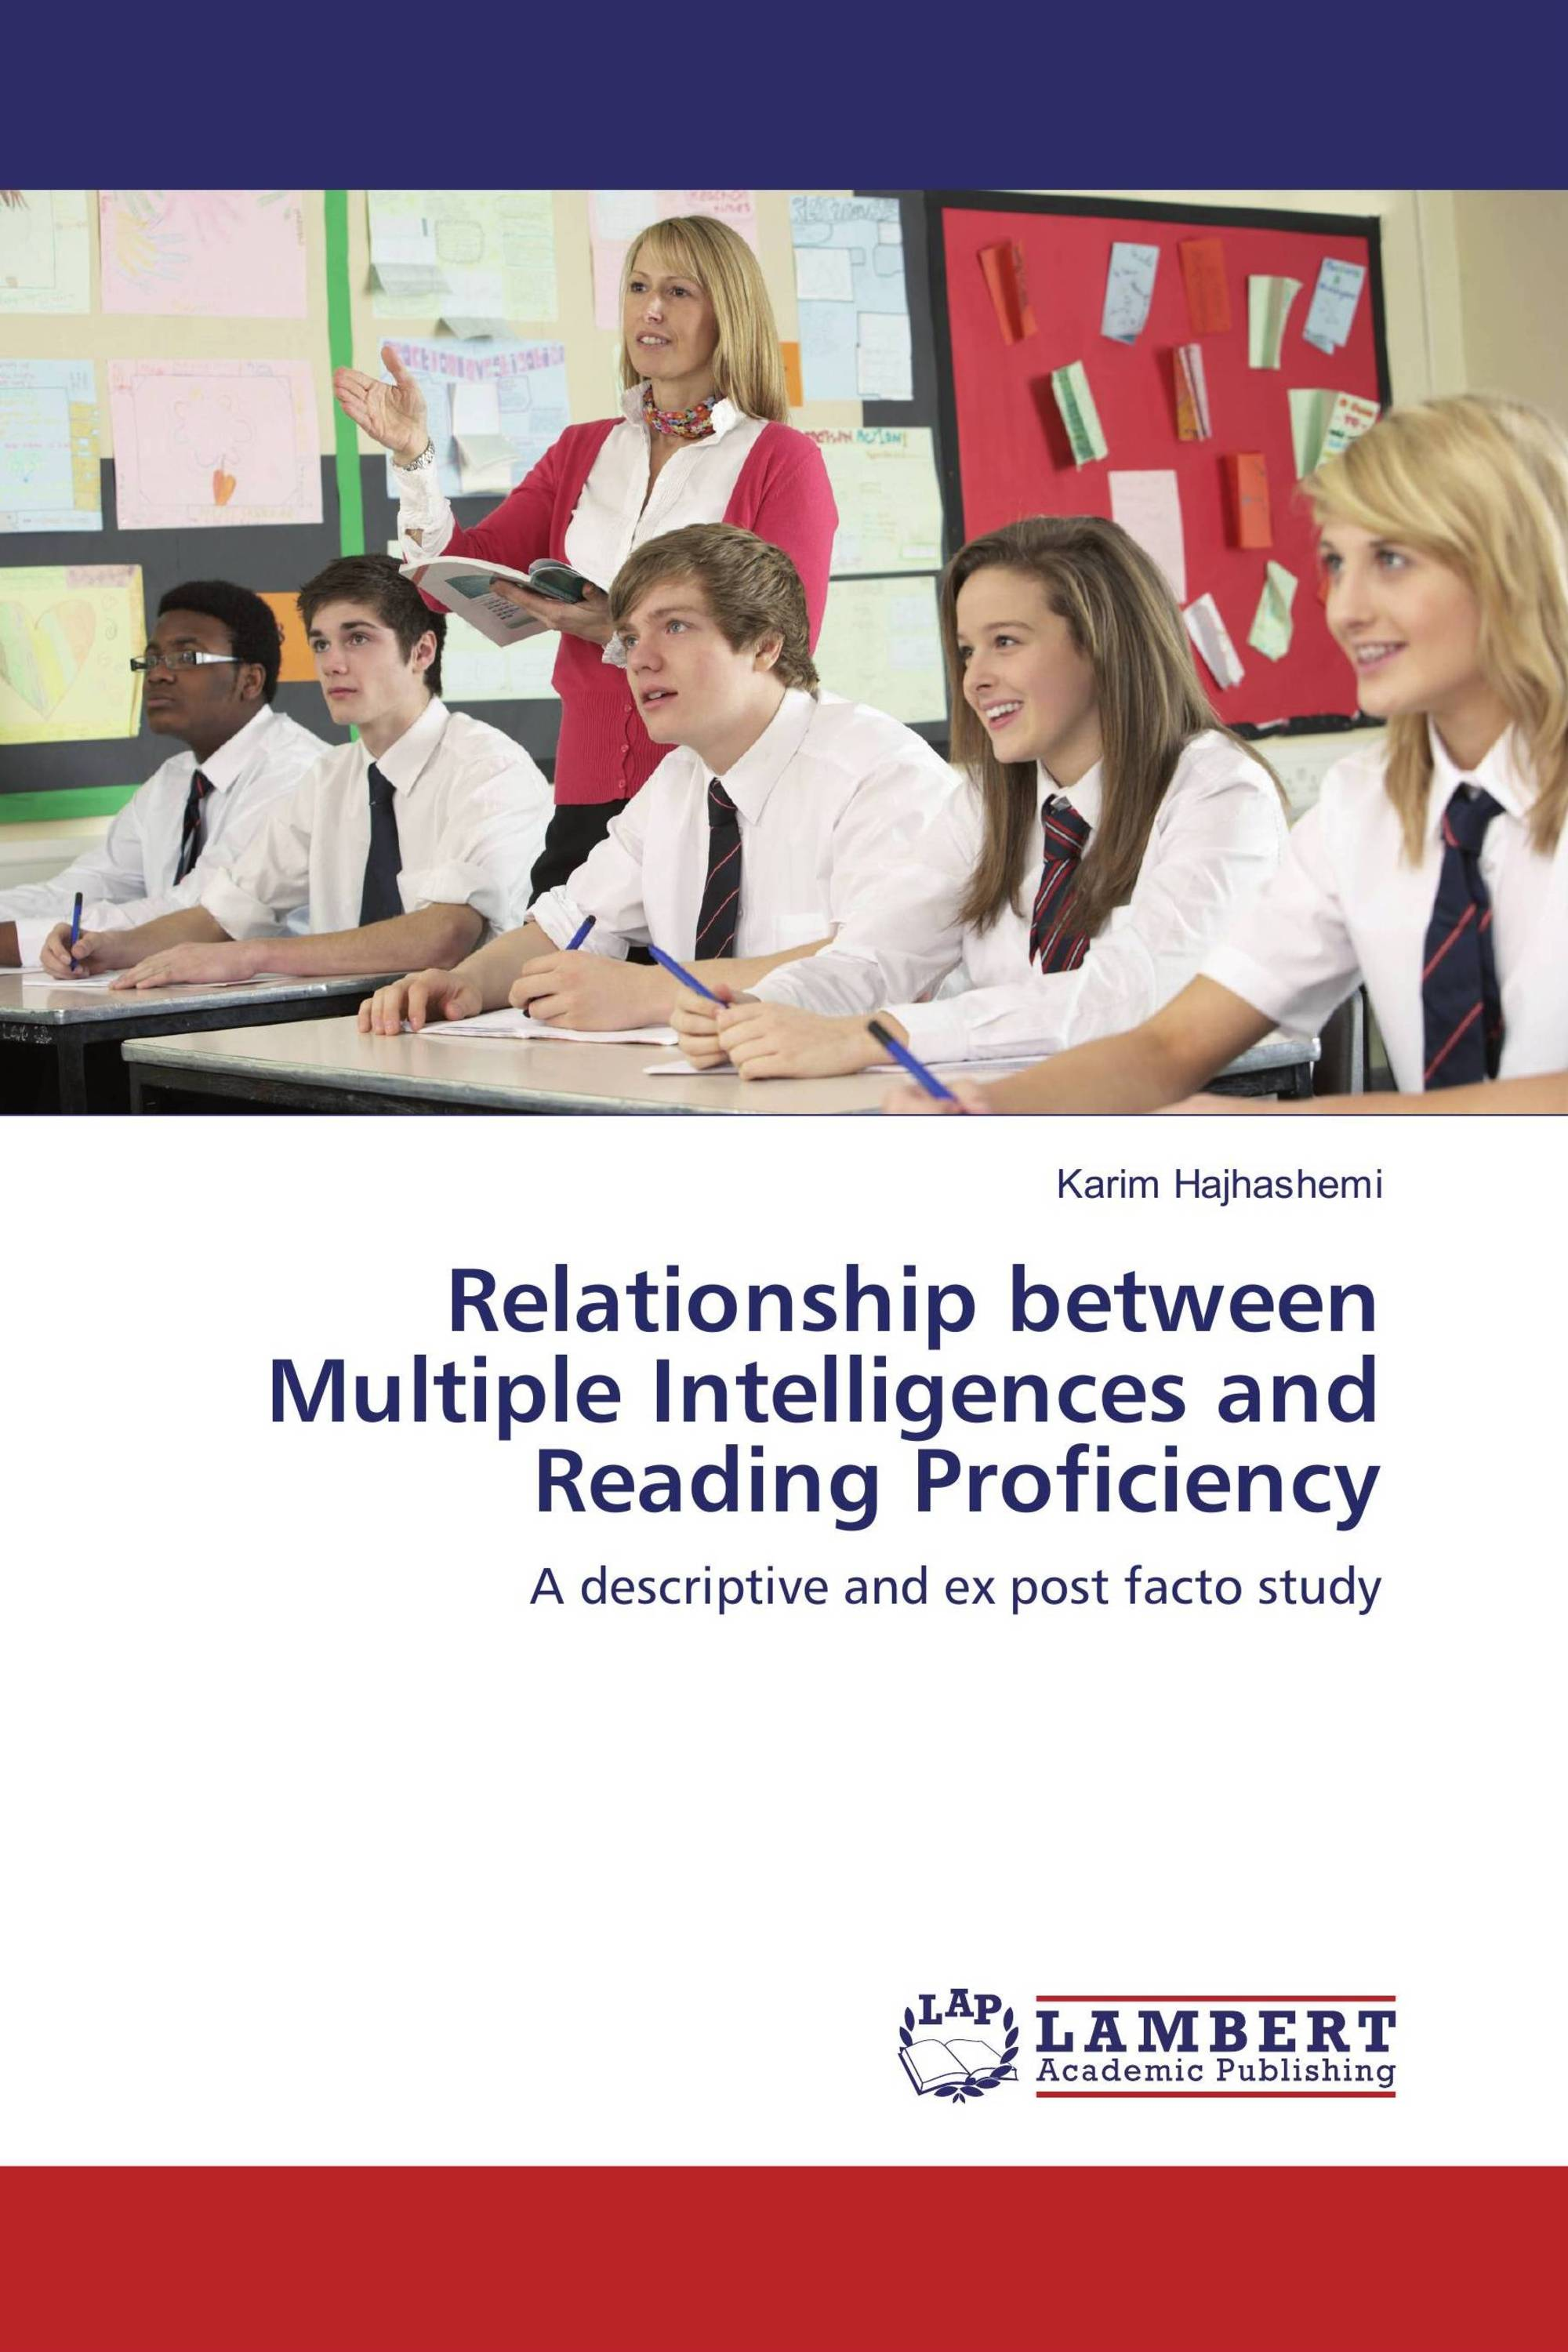 Relationship between Multiple Intelligences and Reading Proficiency